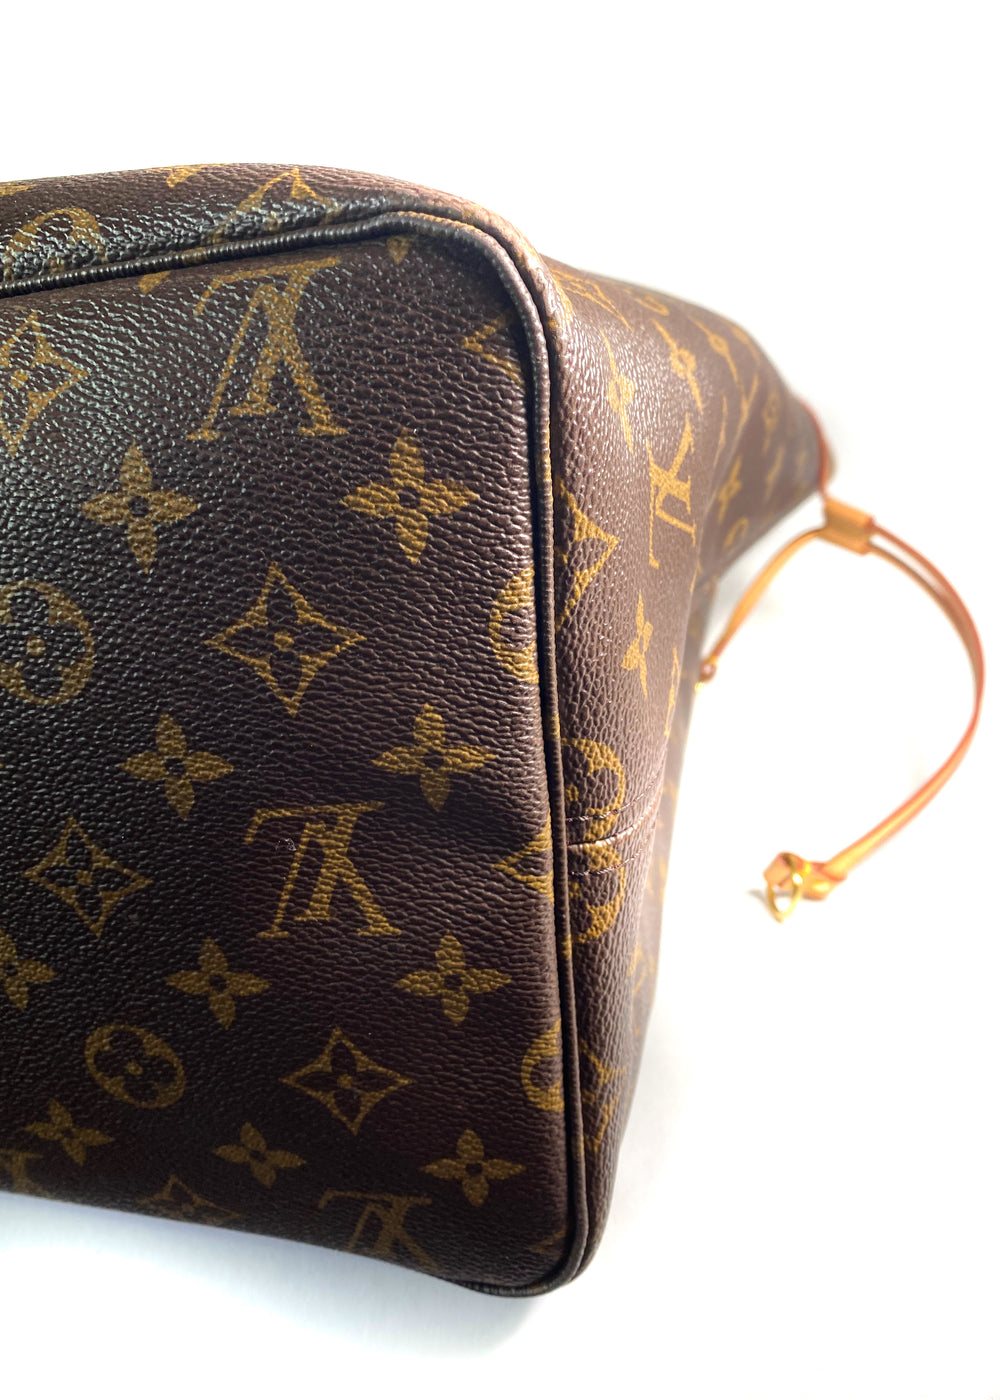 Louis Vuitton Monogram Canvas Neverfull GM - Siopaella Designer Exchange